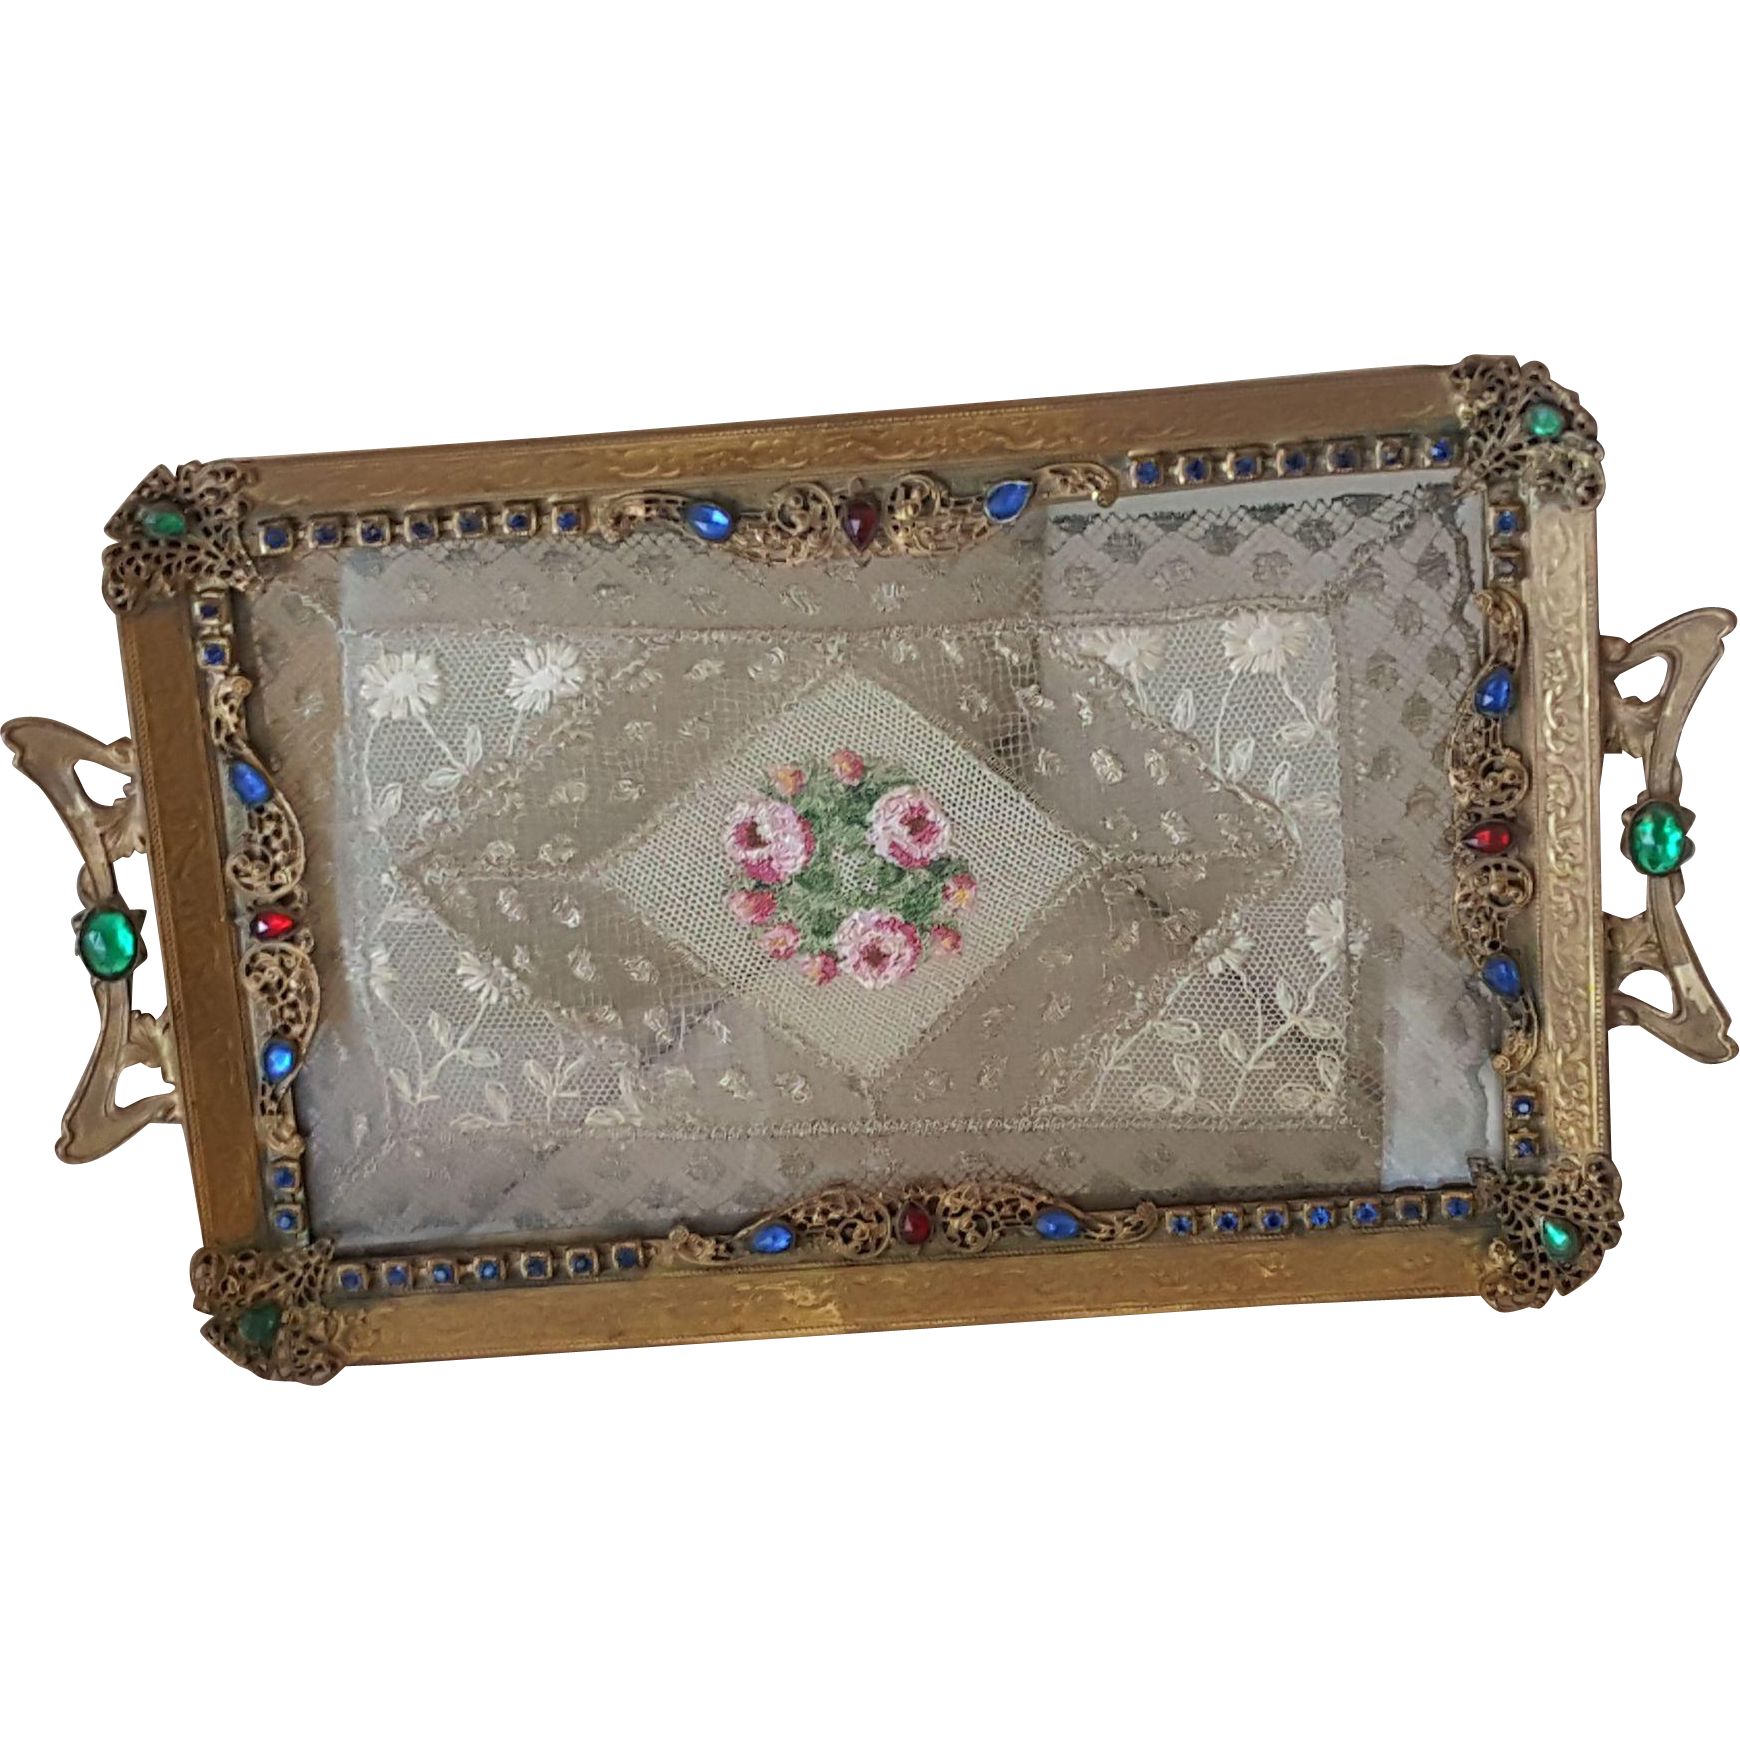 Antique vanity tray with lace insert - Extra Fancy Vintage Jeweled Vanity Tray W Lace Insert